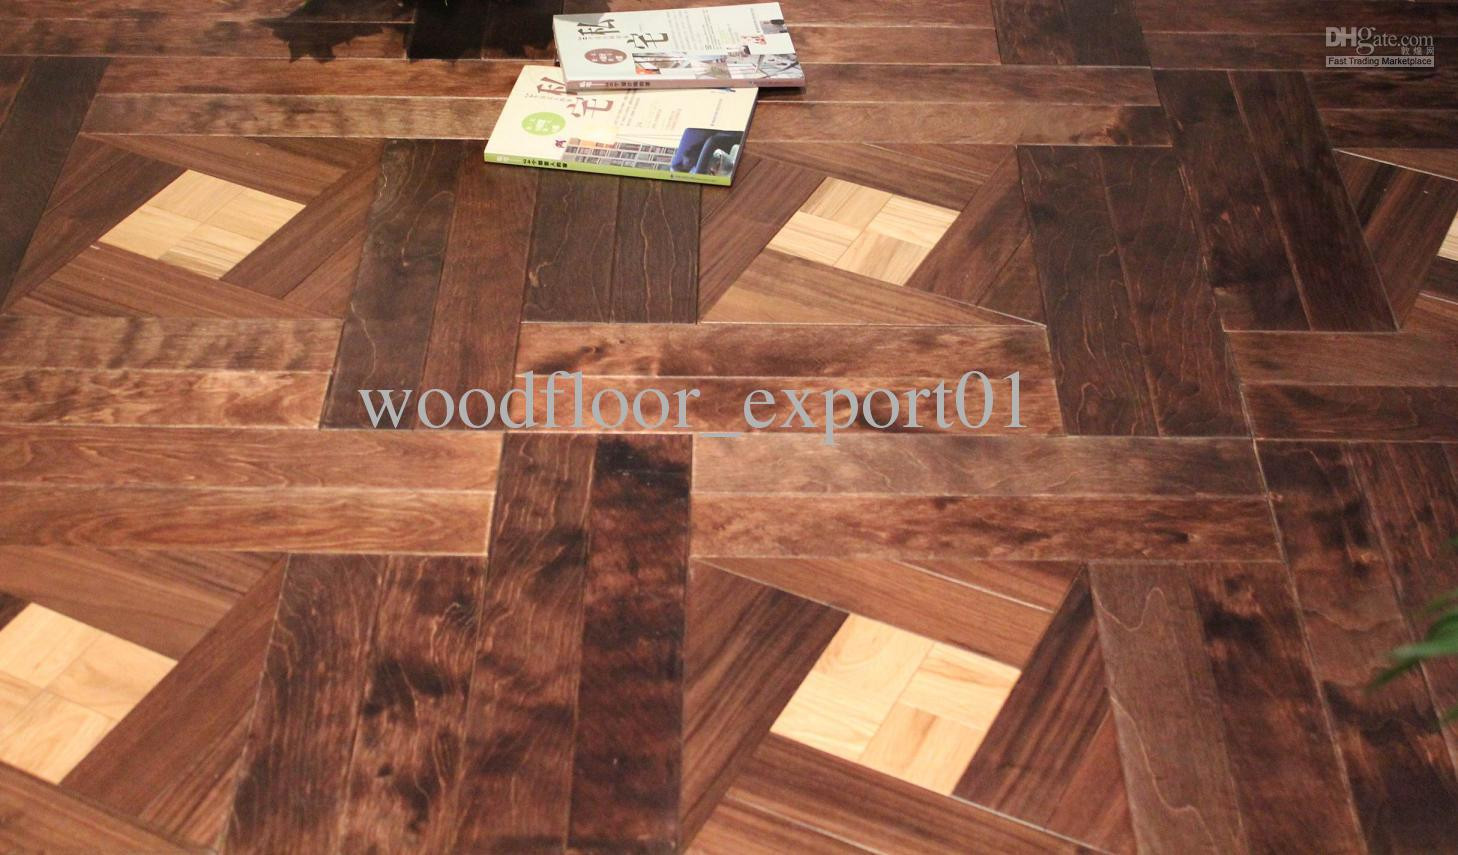 29 Unique Birch Hardwood Flooring Prices 2021 free download birch hardwood flooring prices of solid wood flooring herringbone engineered wood floor ebony floor pertaining to wood floor made of different wood species size186019015 4mm abc real wood st